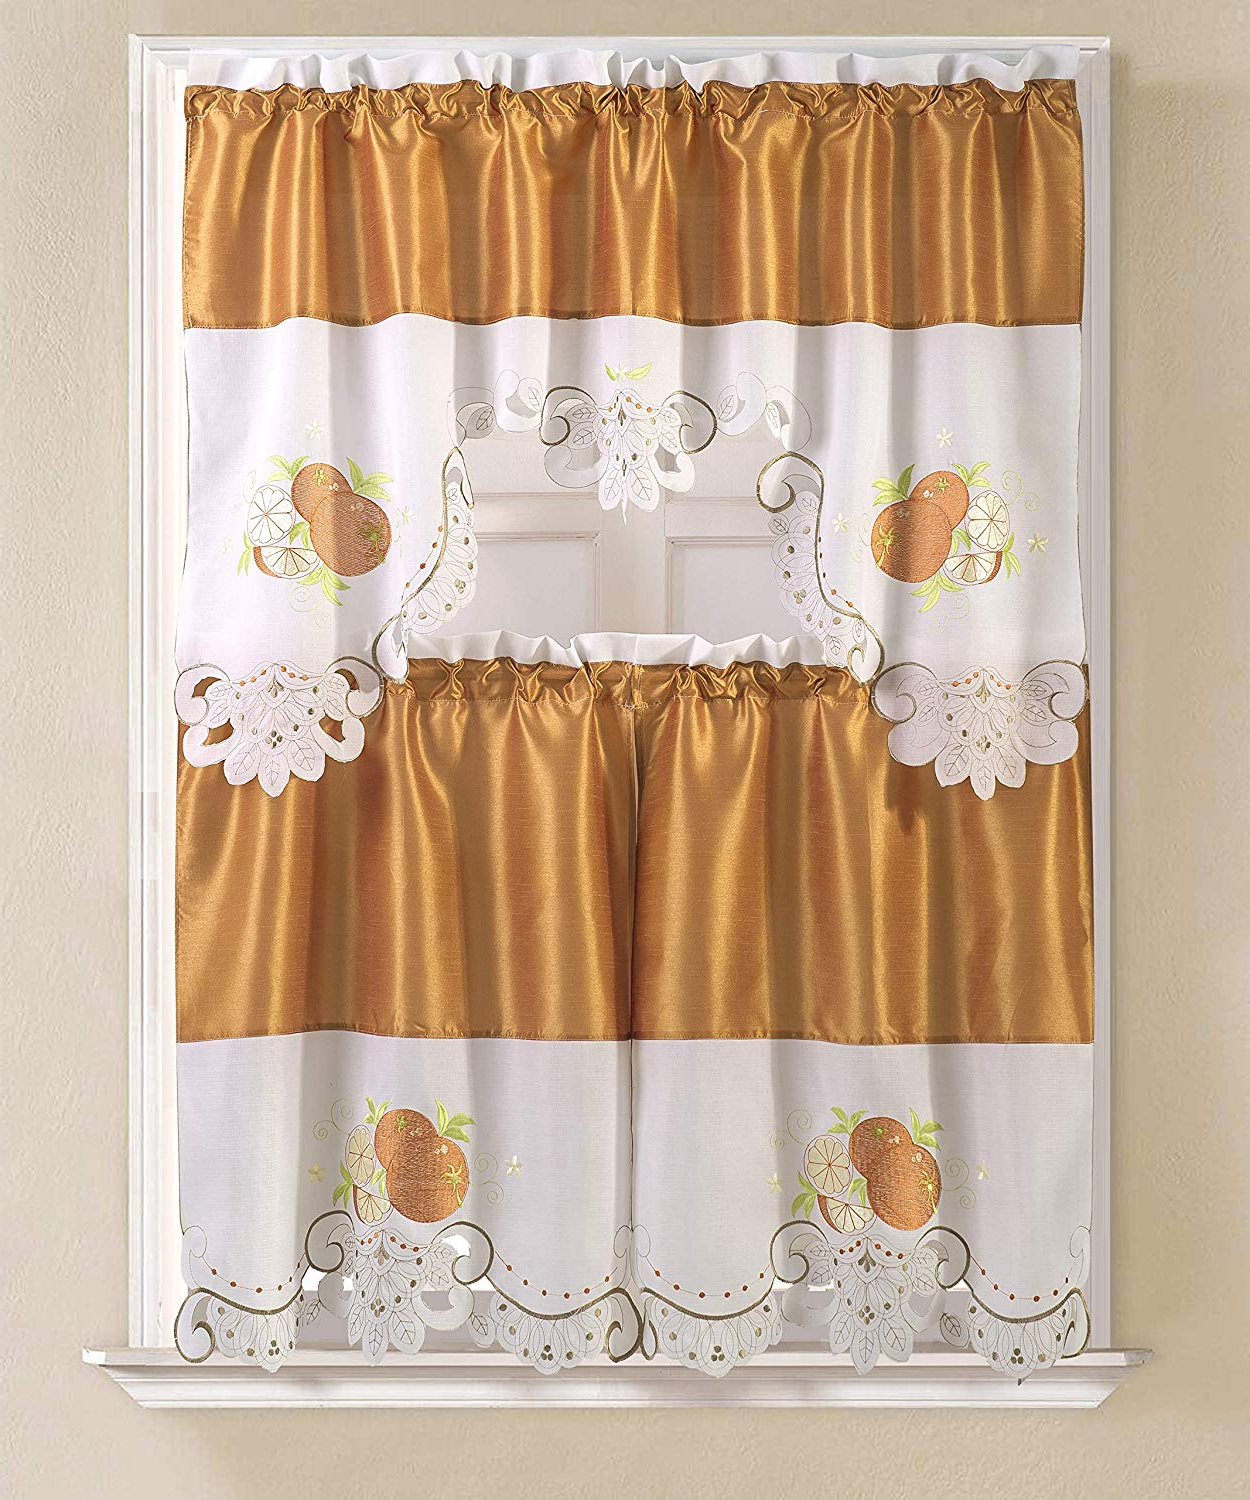 Well Liked Rt Designers Collection Noble Embroidered Tier & Valance Kitchen Curtain Set, Apple Inside Urban Embroidered Tier And Valance Kitchen Curtain Tier Sets (View 12 of 20)